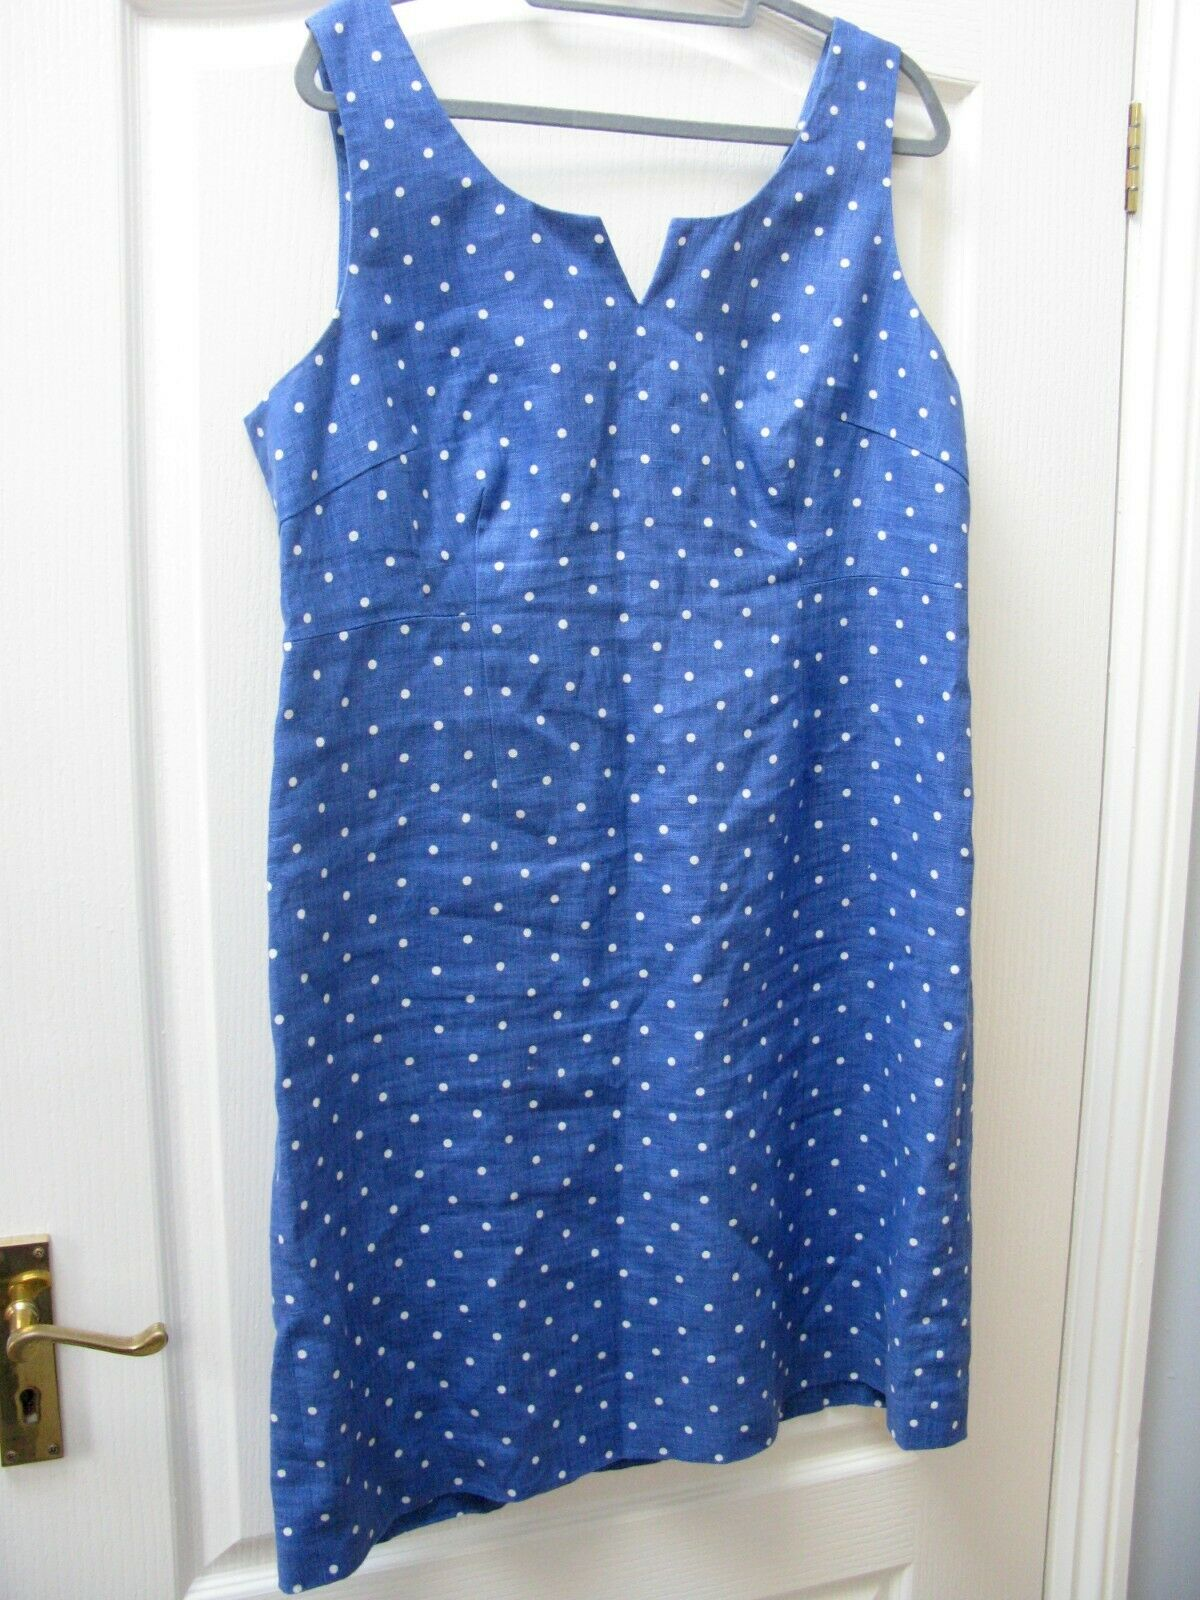 EAST 100% Linen Blue Polka Dot Shift Dress Size 16 Spot Wedding Races Holiday